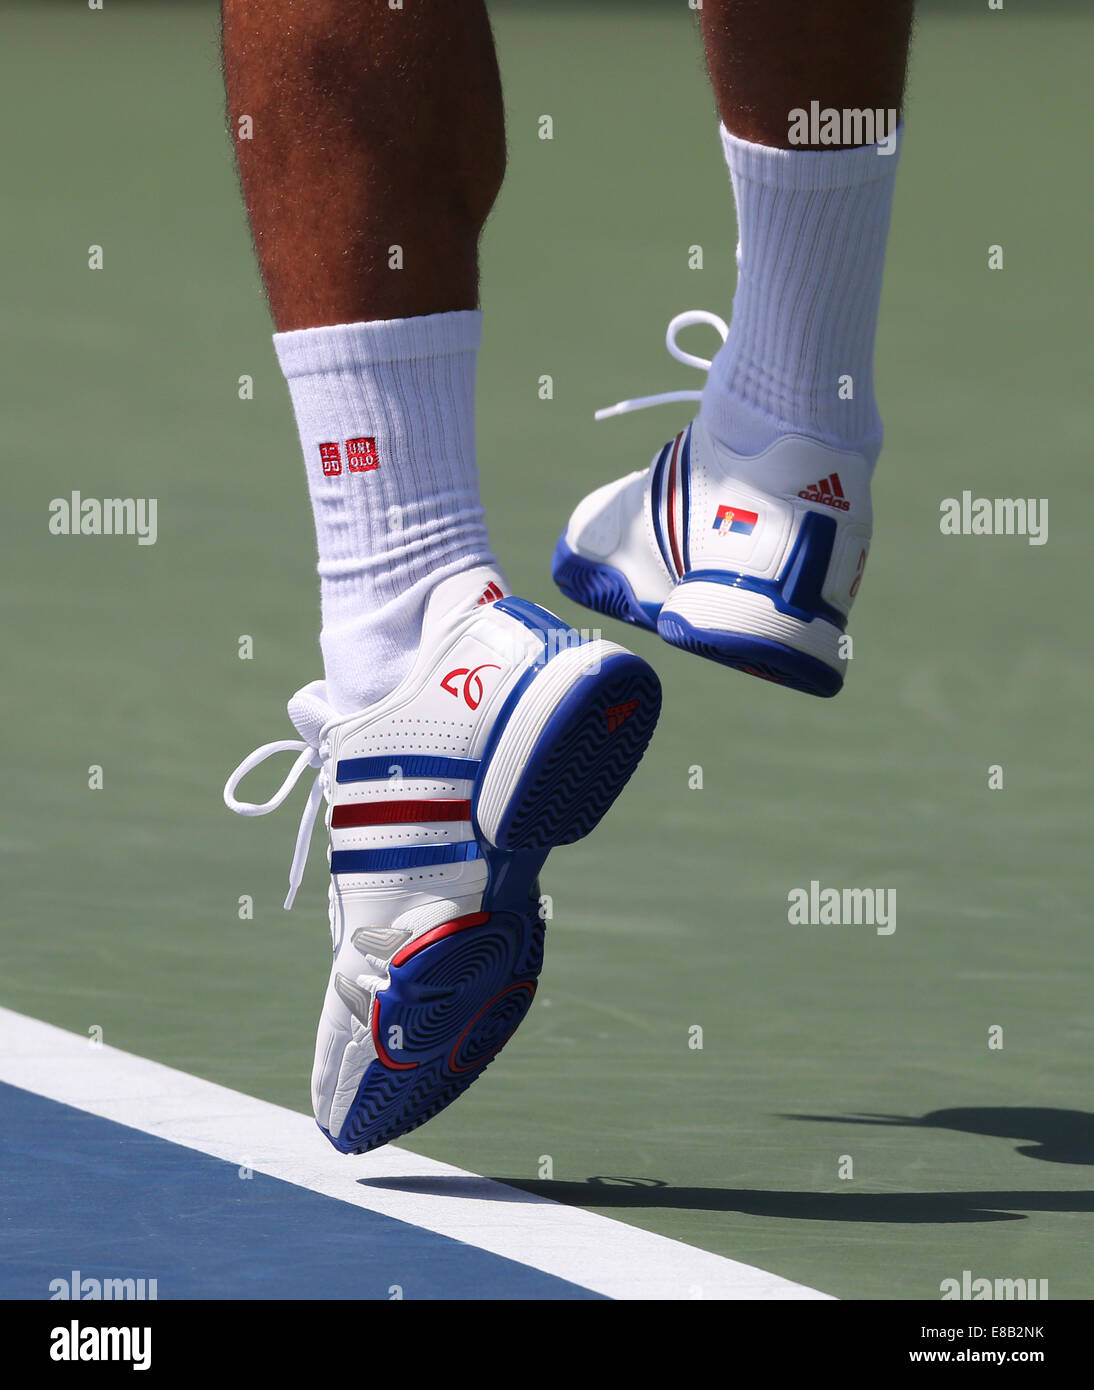 Feet of Novak Djokovic (SRB) in action at the US Open 2014 Championships in New York,USA. - Stock Image